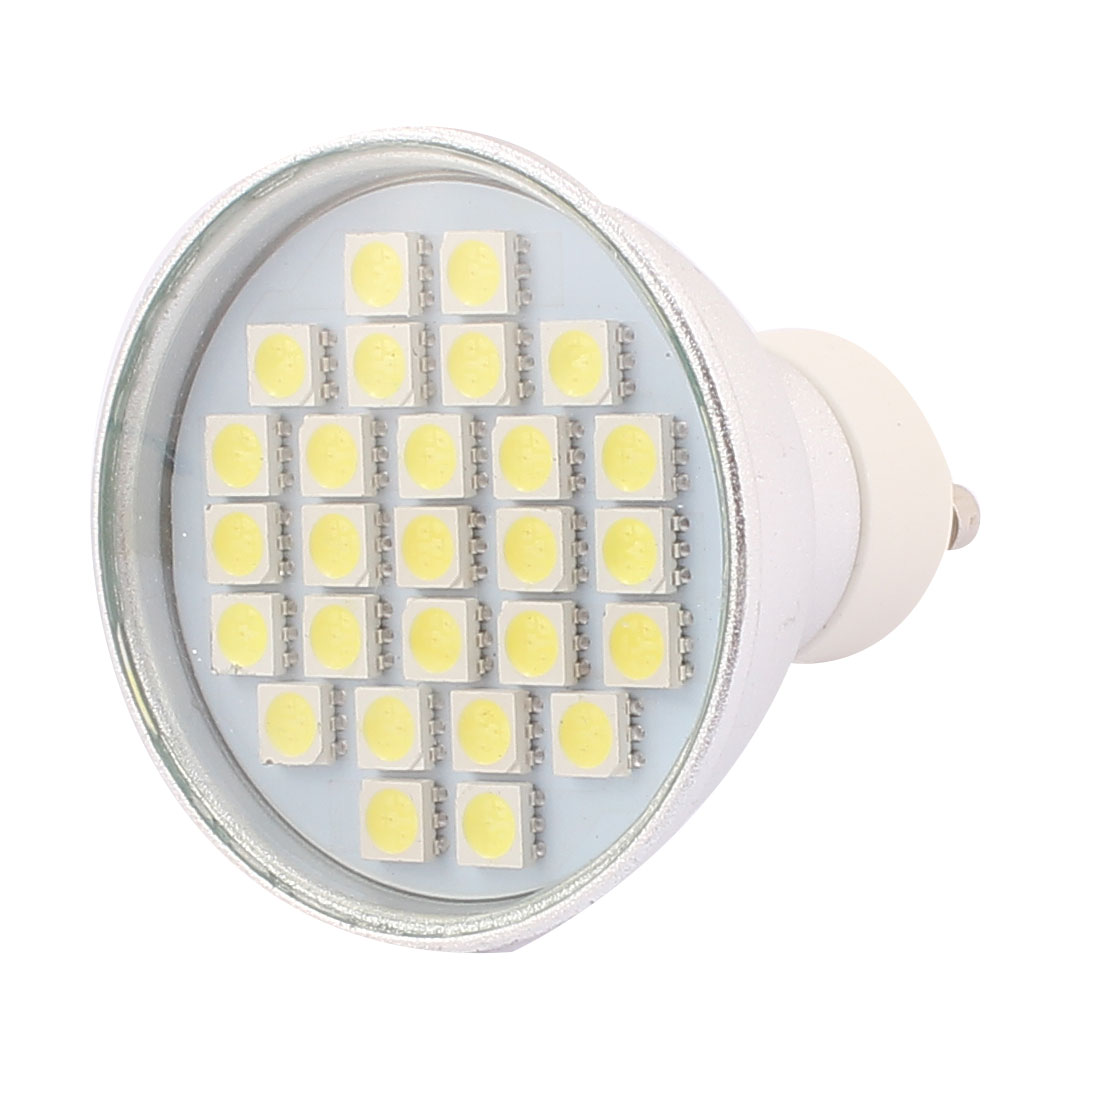 220V GU10 LED Light 4W 5050 SMD 27 LEDs Spotlight Down Lamp Bulb Energy Saving Pure White